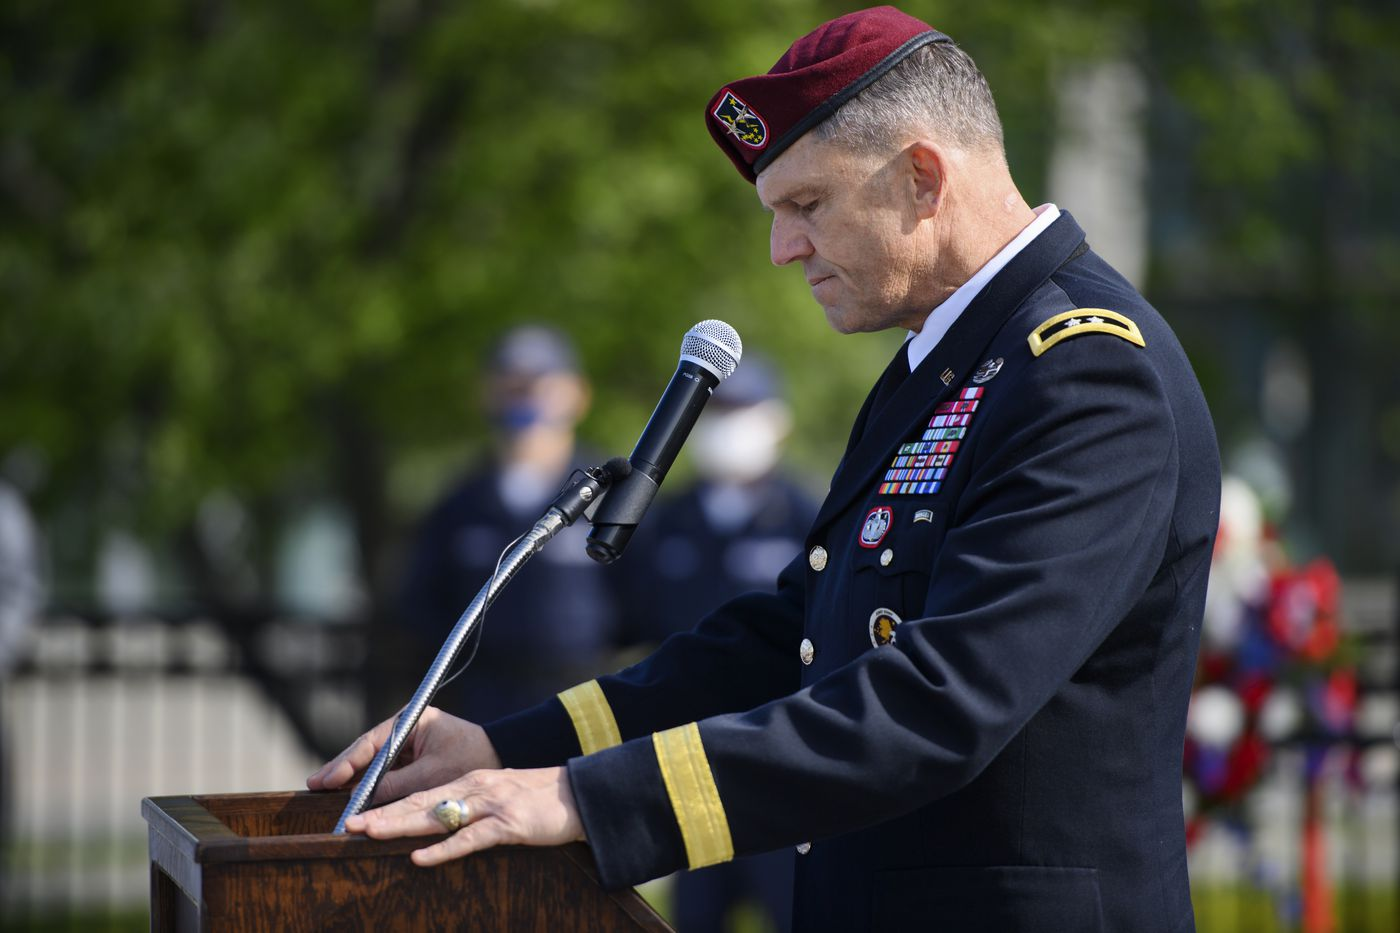 Maj. Gen. Peter Andrysiak, commanding general of the U.S. Army Alaska, gives the keynote speech at Anchorage's Memorial Day ceremony on the Delany Park Strip on May 31, 2021. (Marc Lester / ADN)